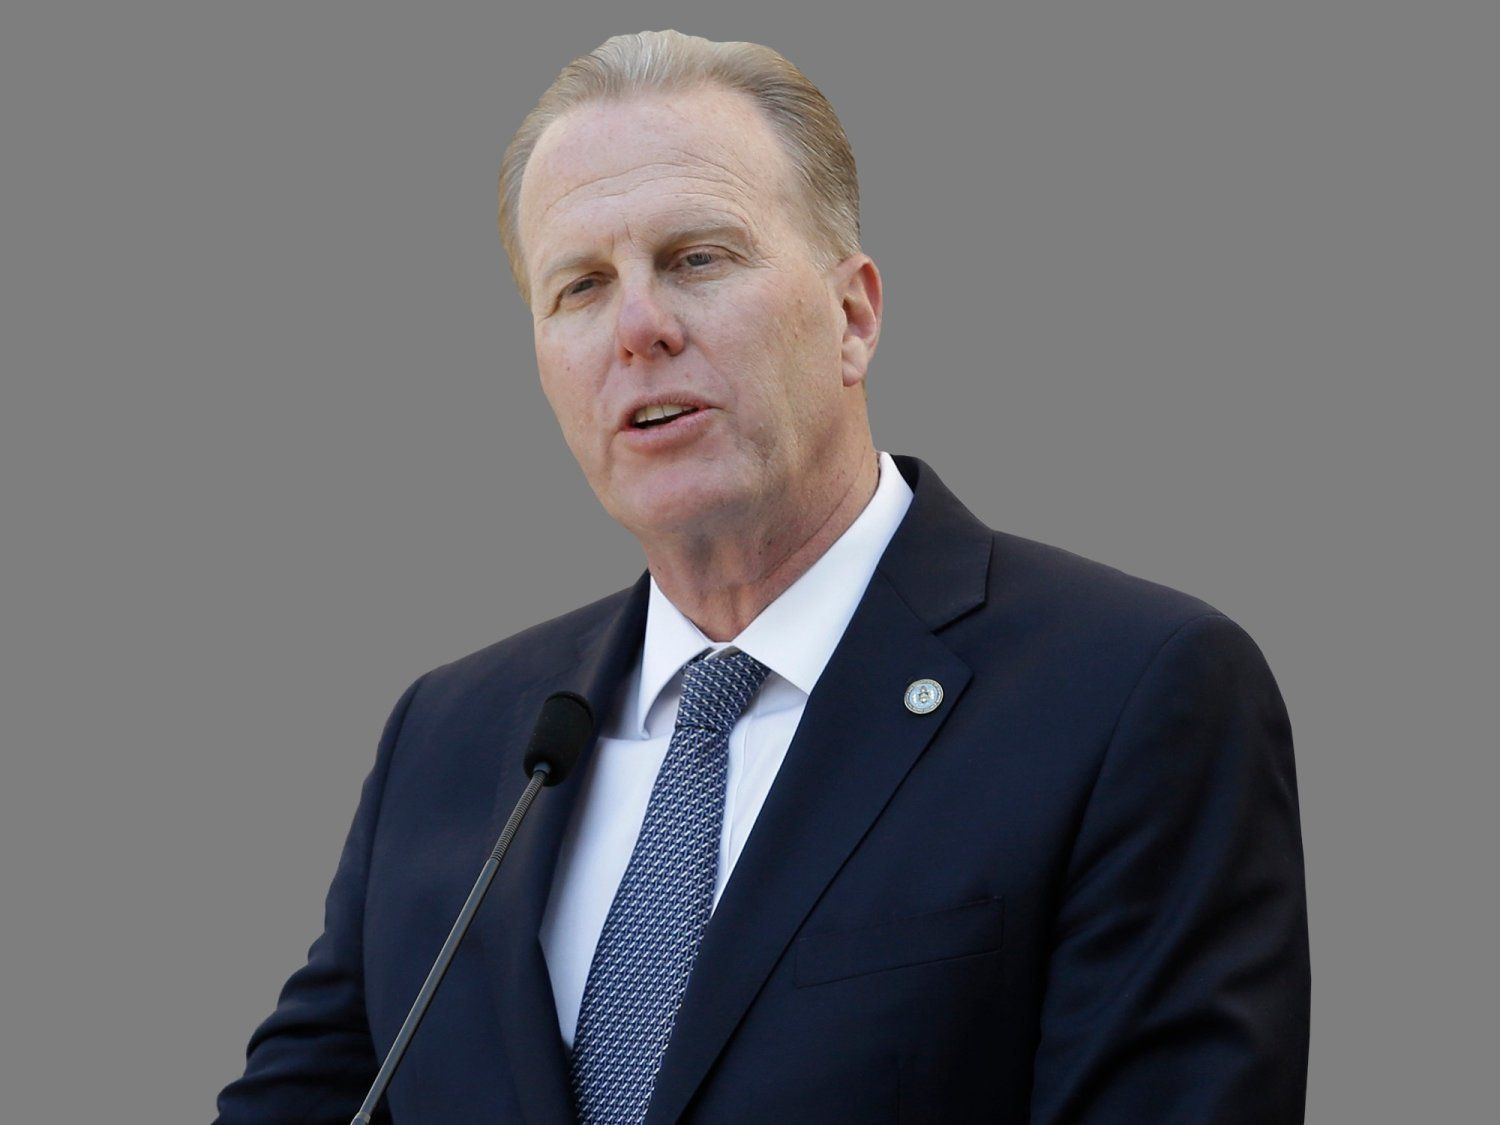 Kevin Faulconer headshot, as San Diego mayor, graphic element on gray